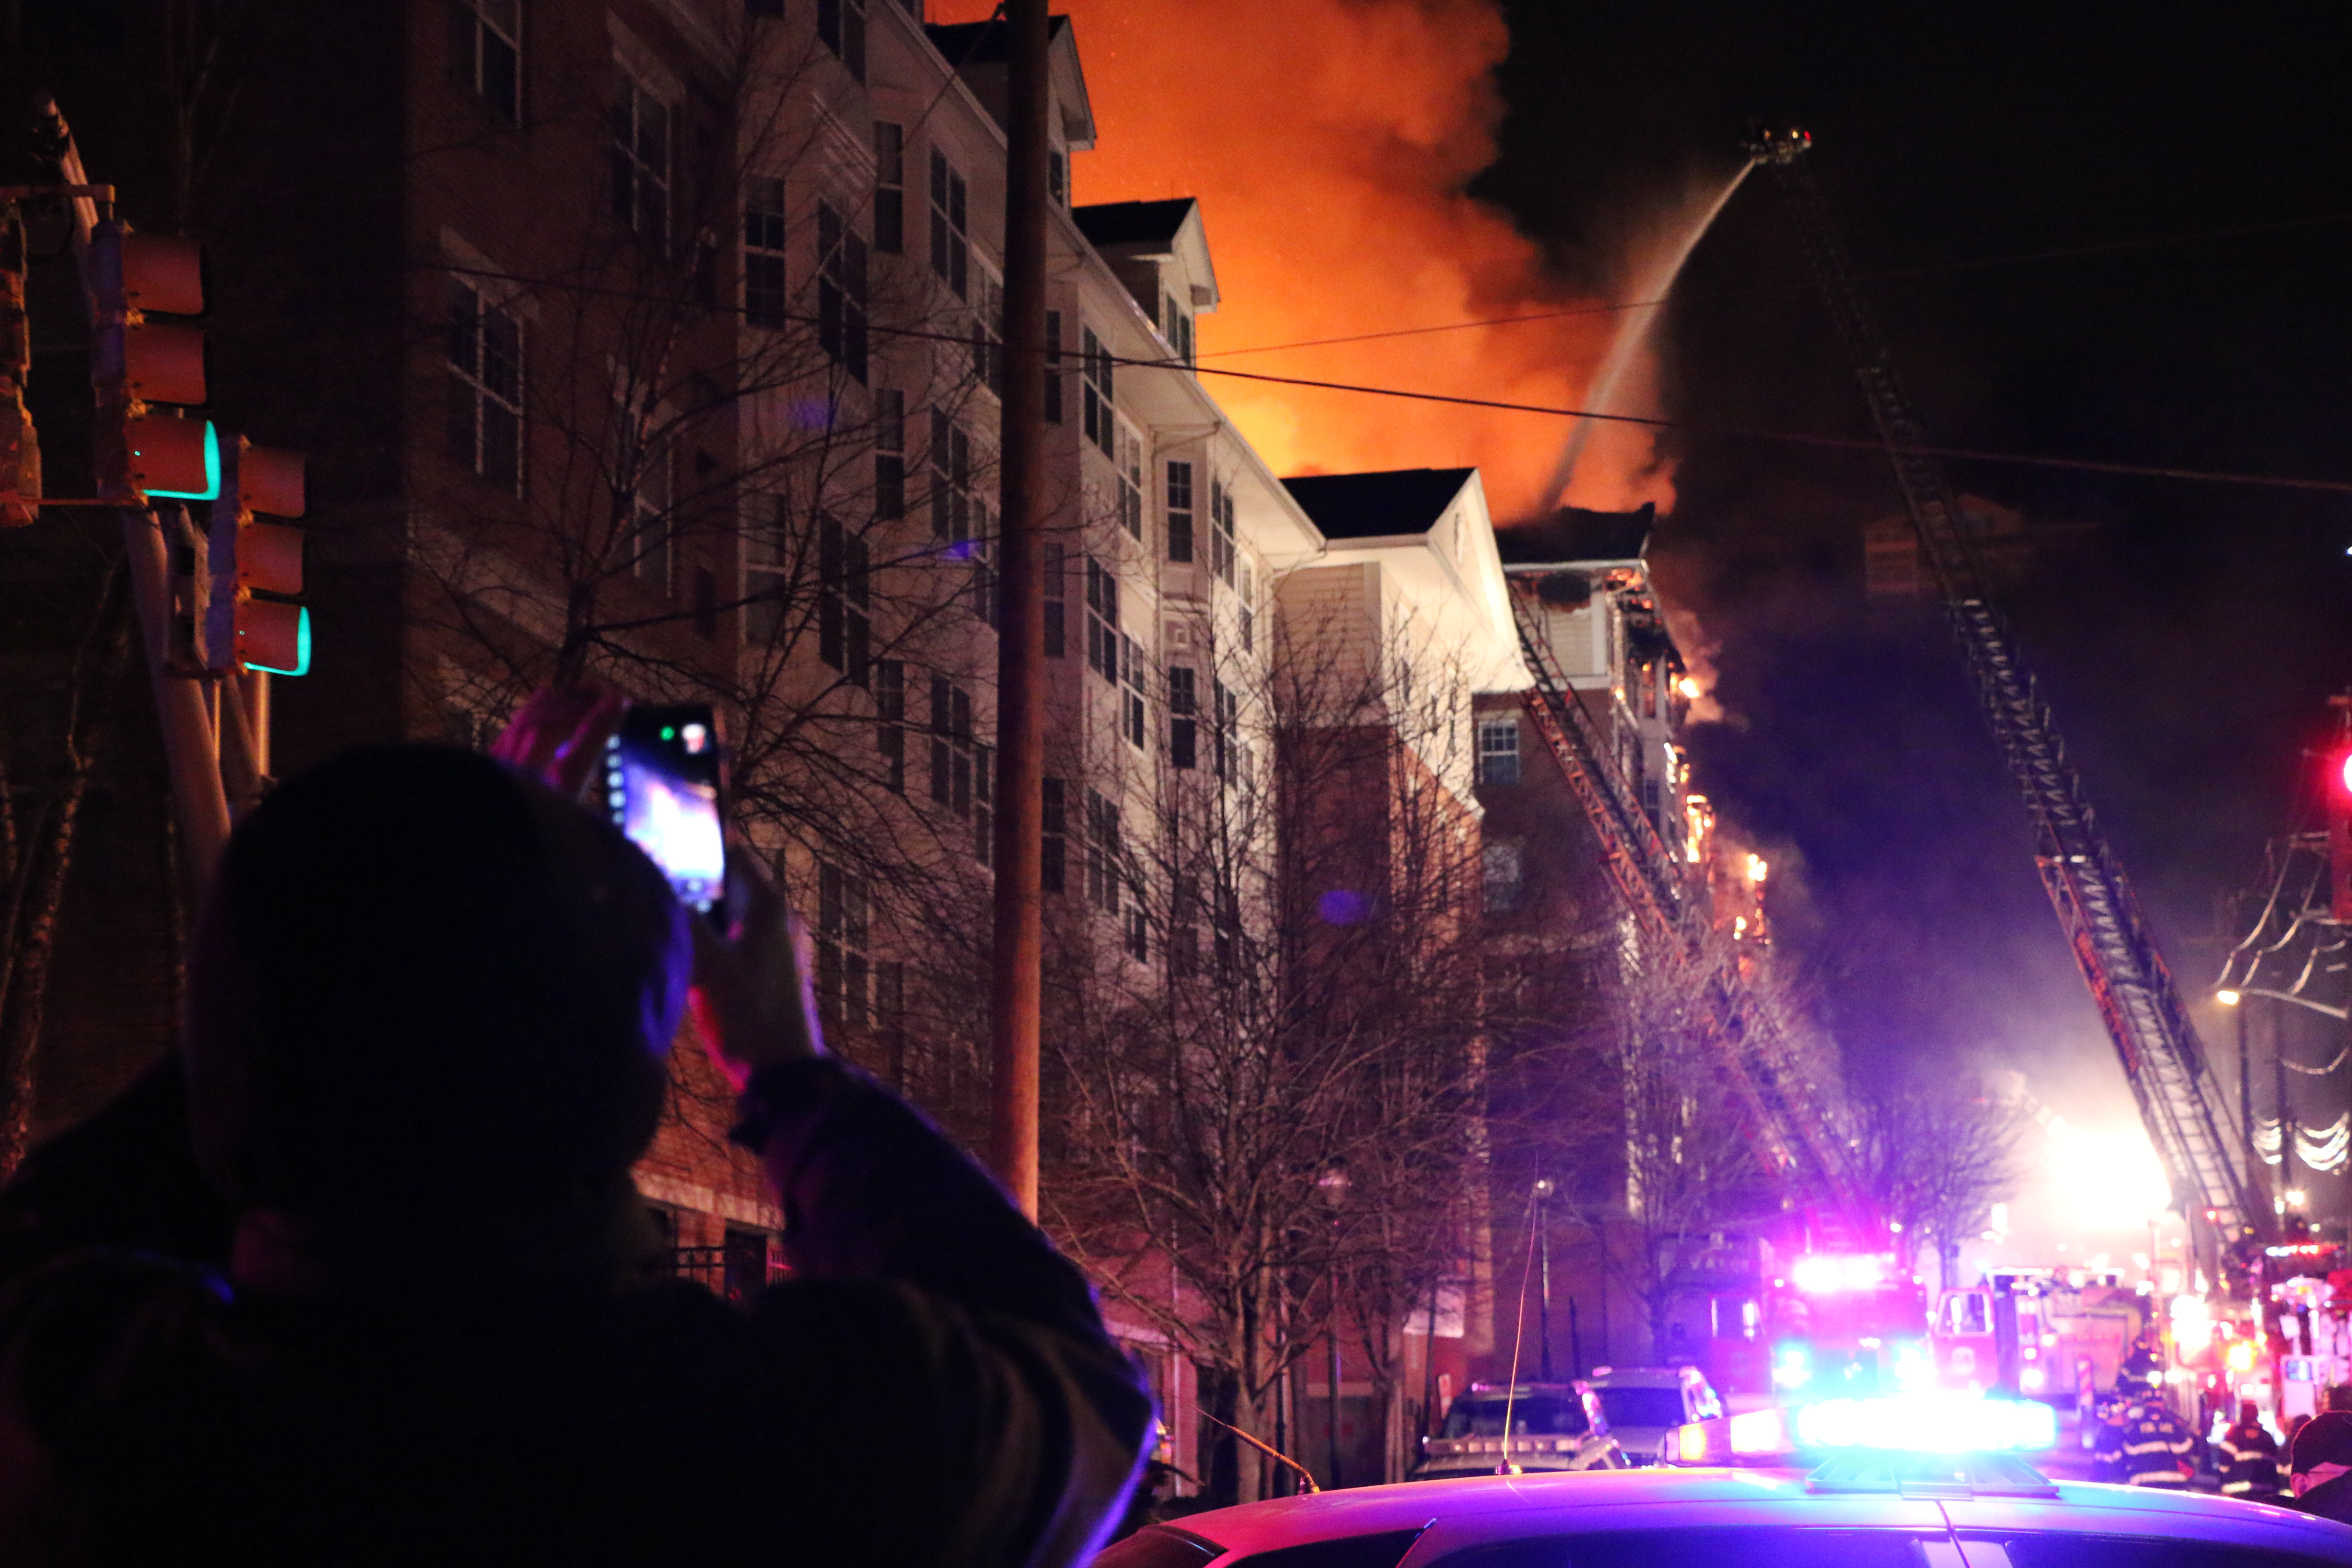 A massive fire sparked debate over apartment safety 5 years ago. What's actually changed?